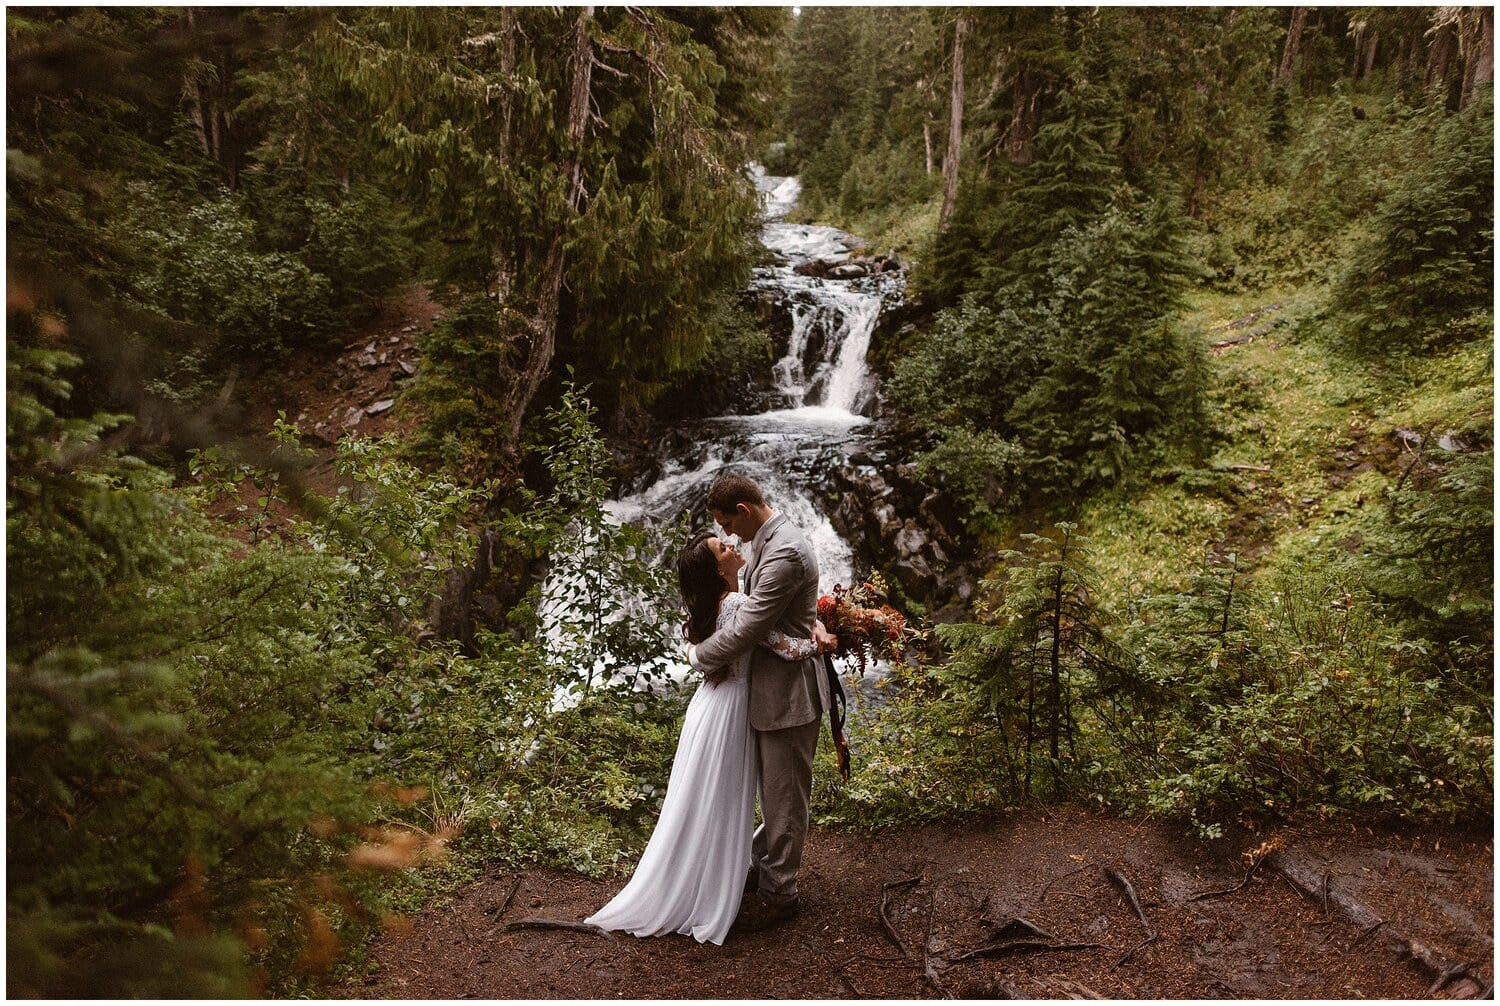 A bride and groom embrace near a waterfall on their wedding day.